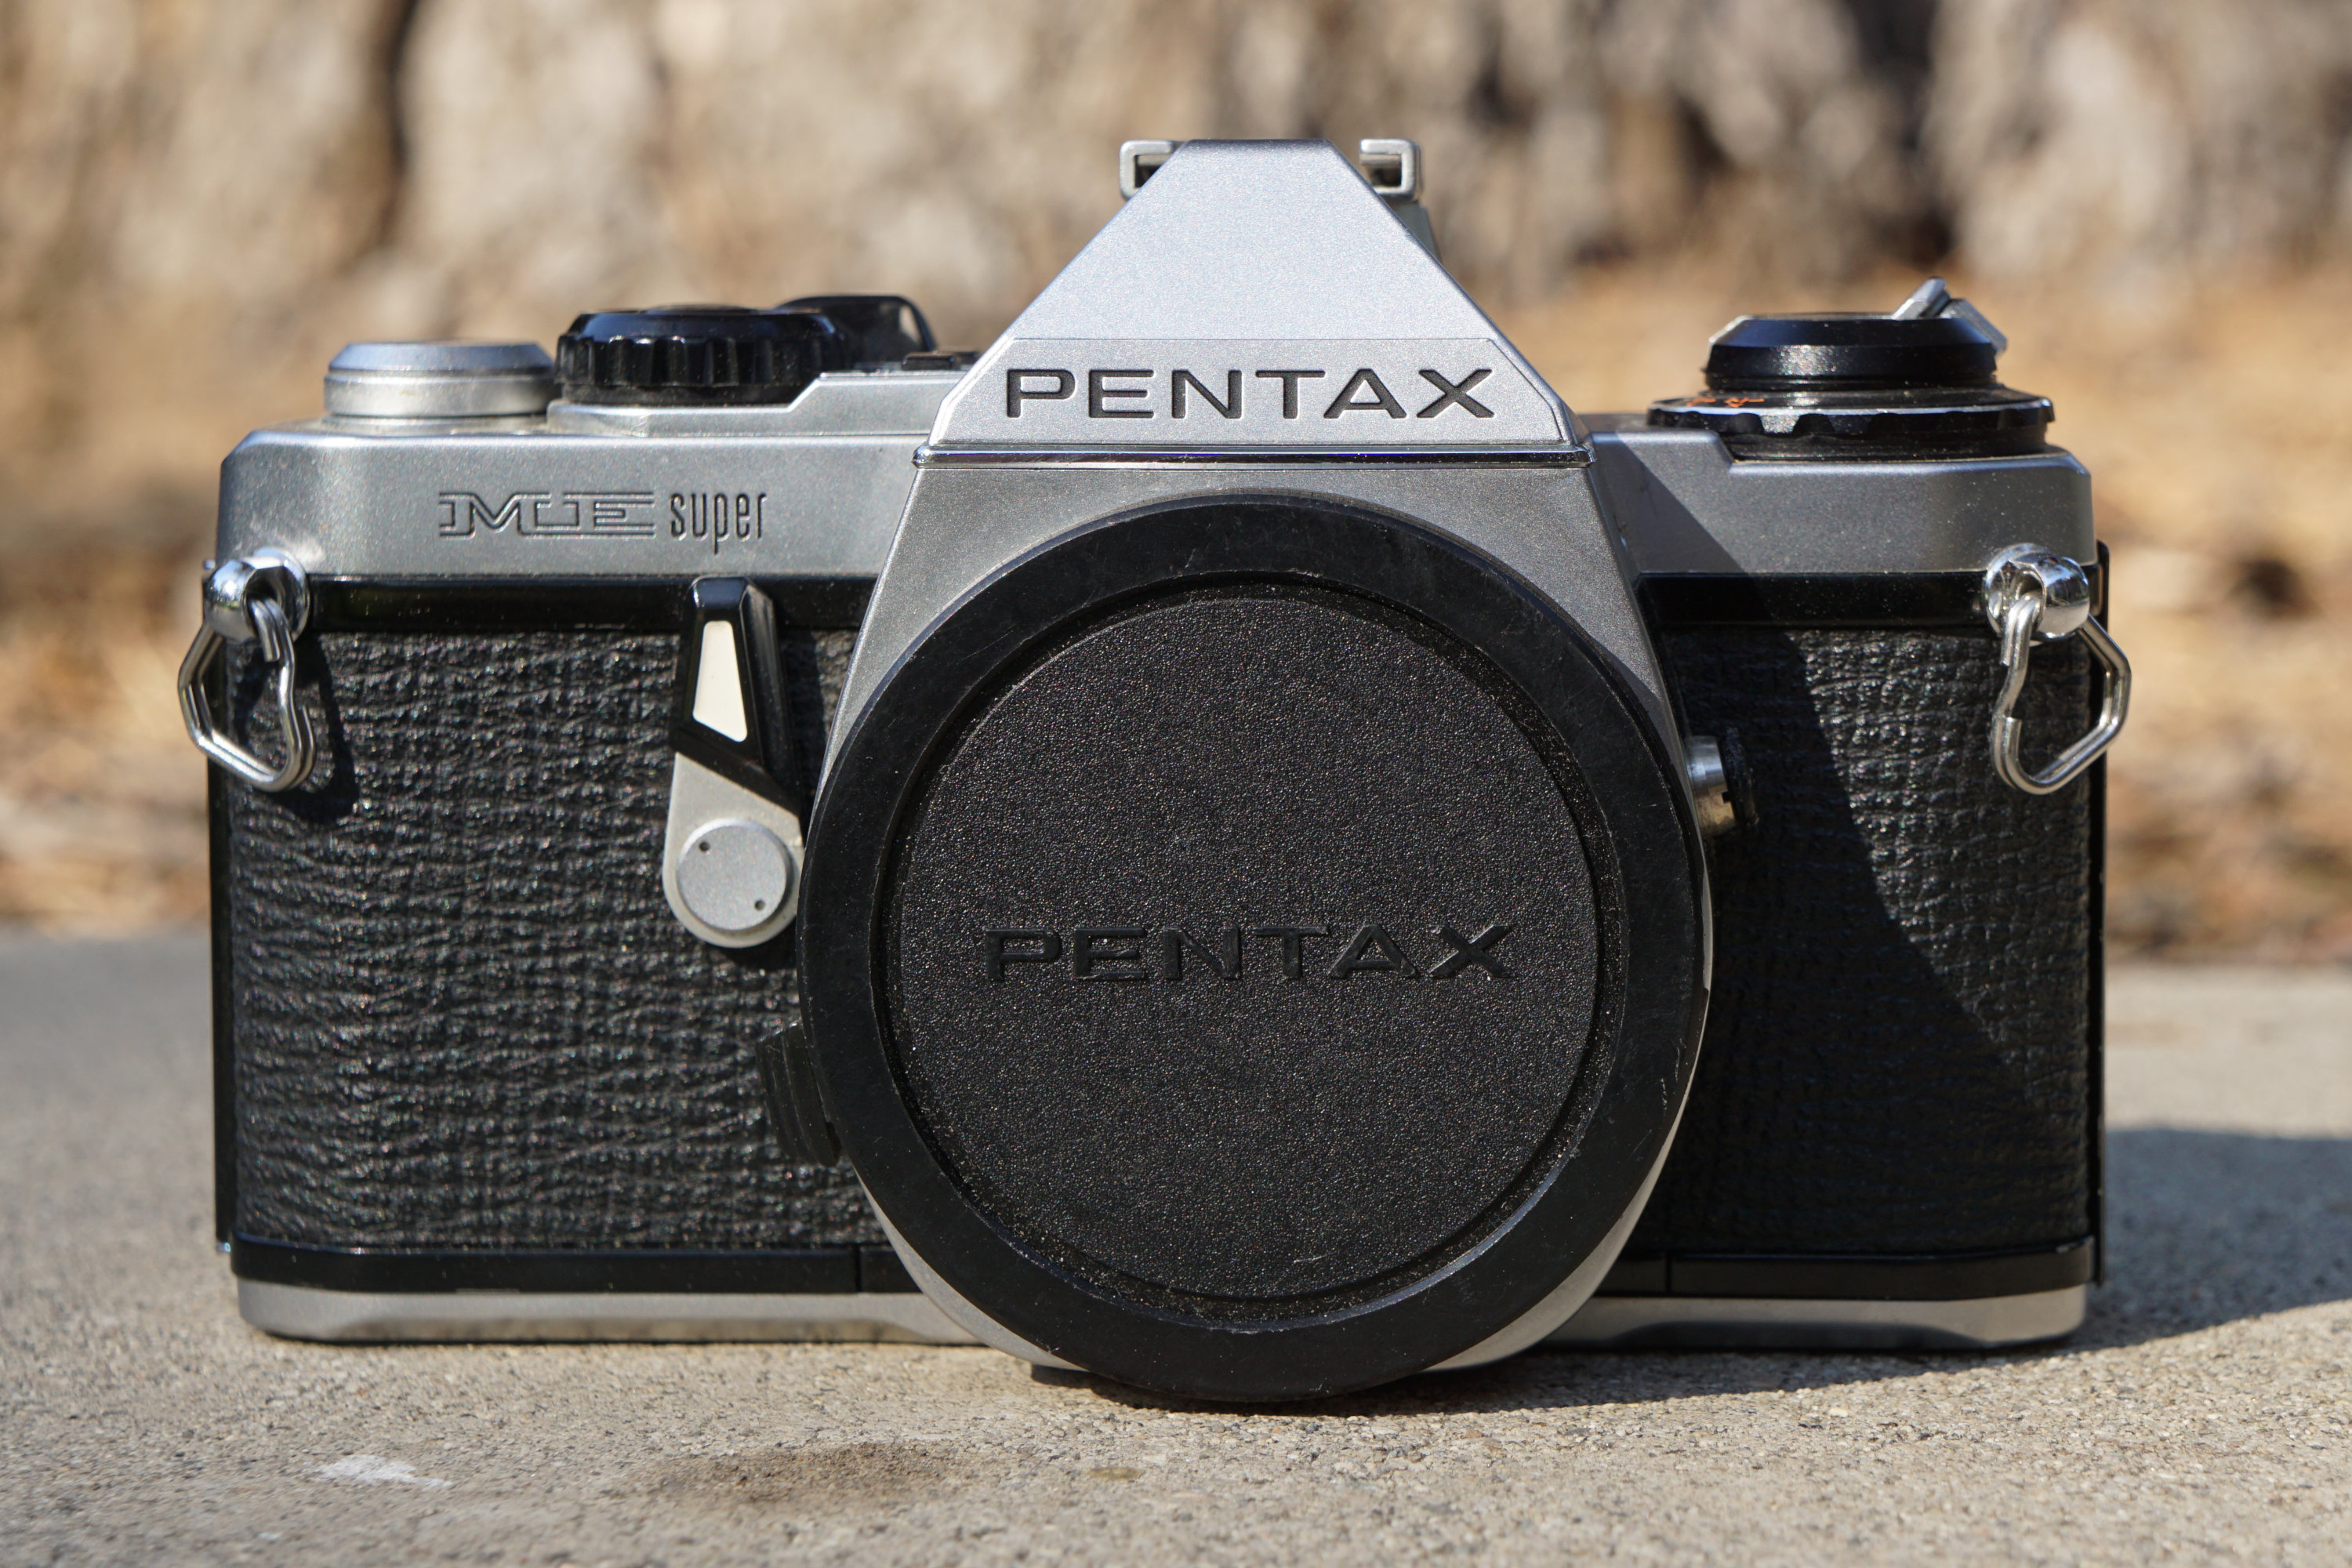 Pentax ME Super front view (Pic: Aaron Gold)